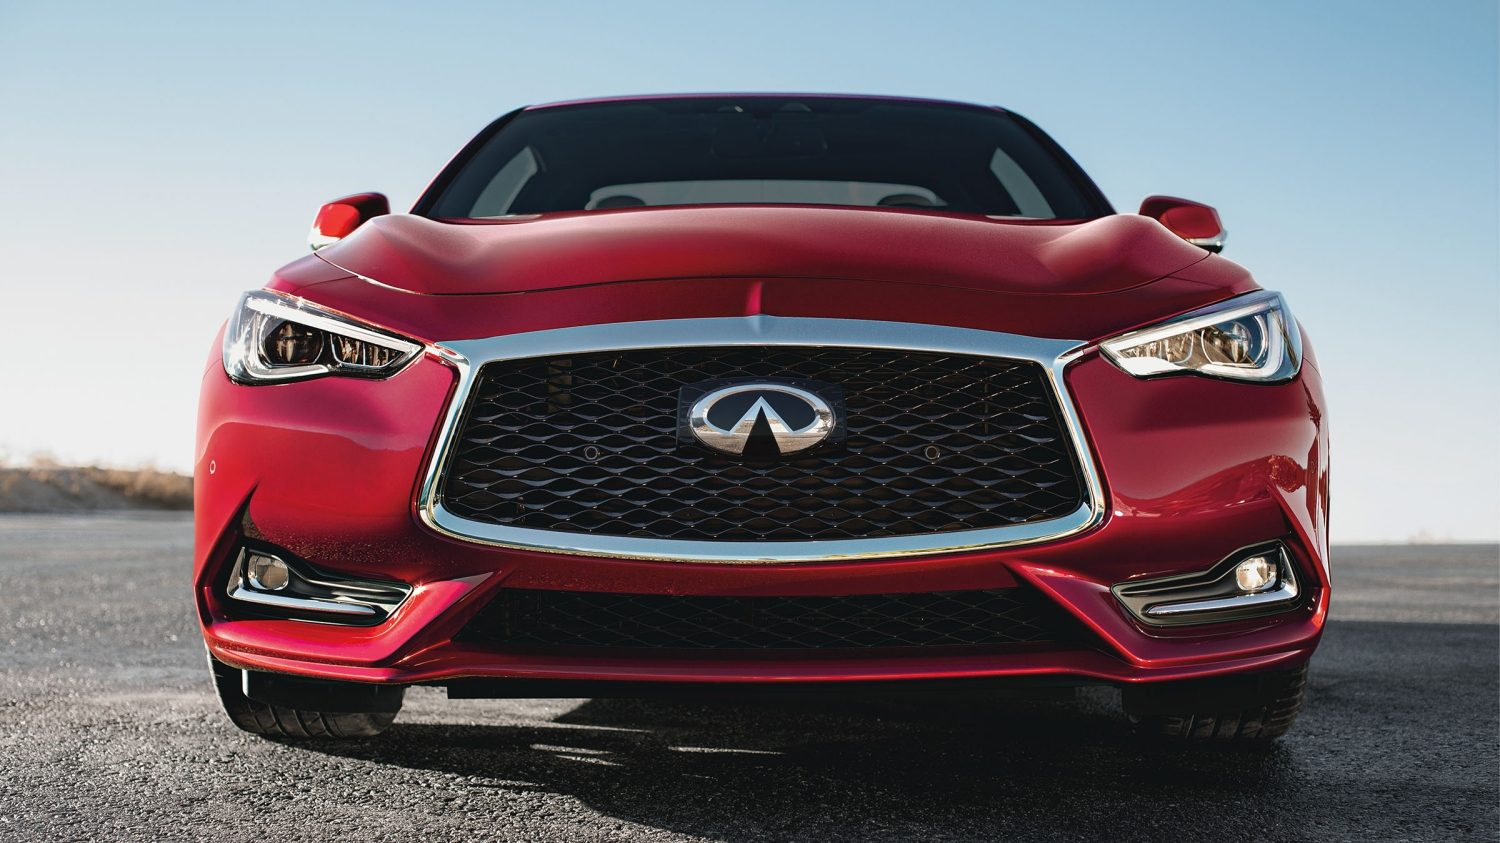 2018 INFINITI Q60 Red Sport 400 Performance Sports Coupe | Performance and Power